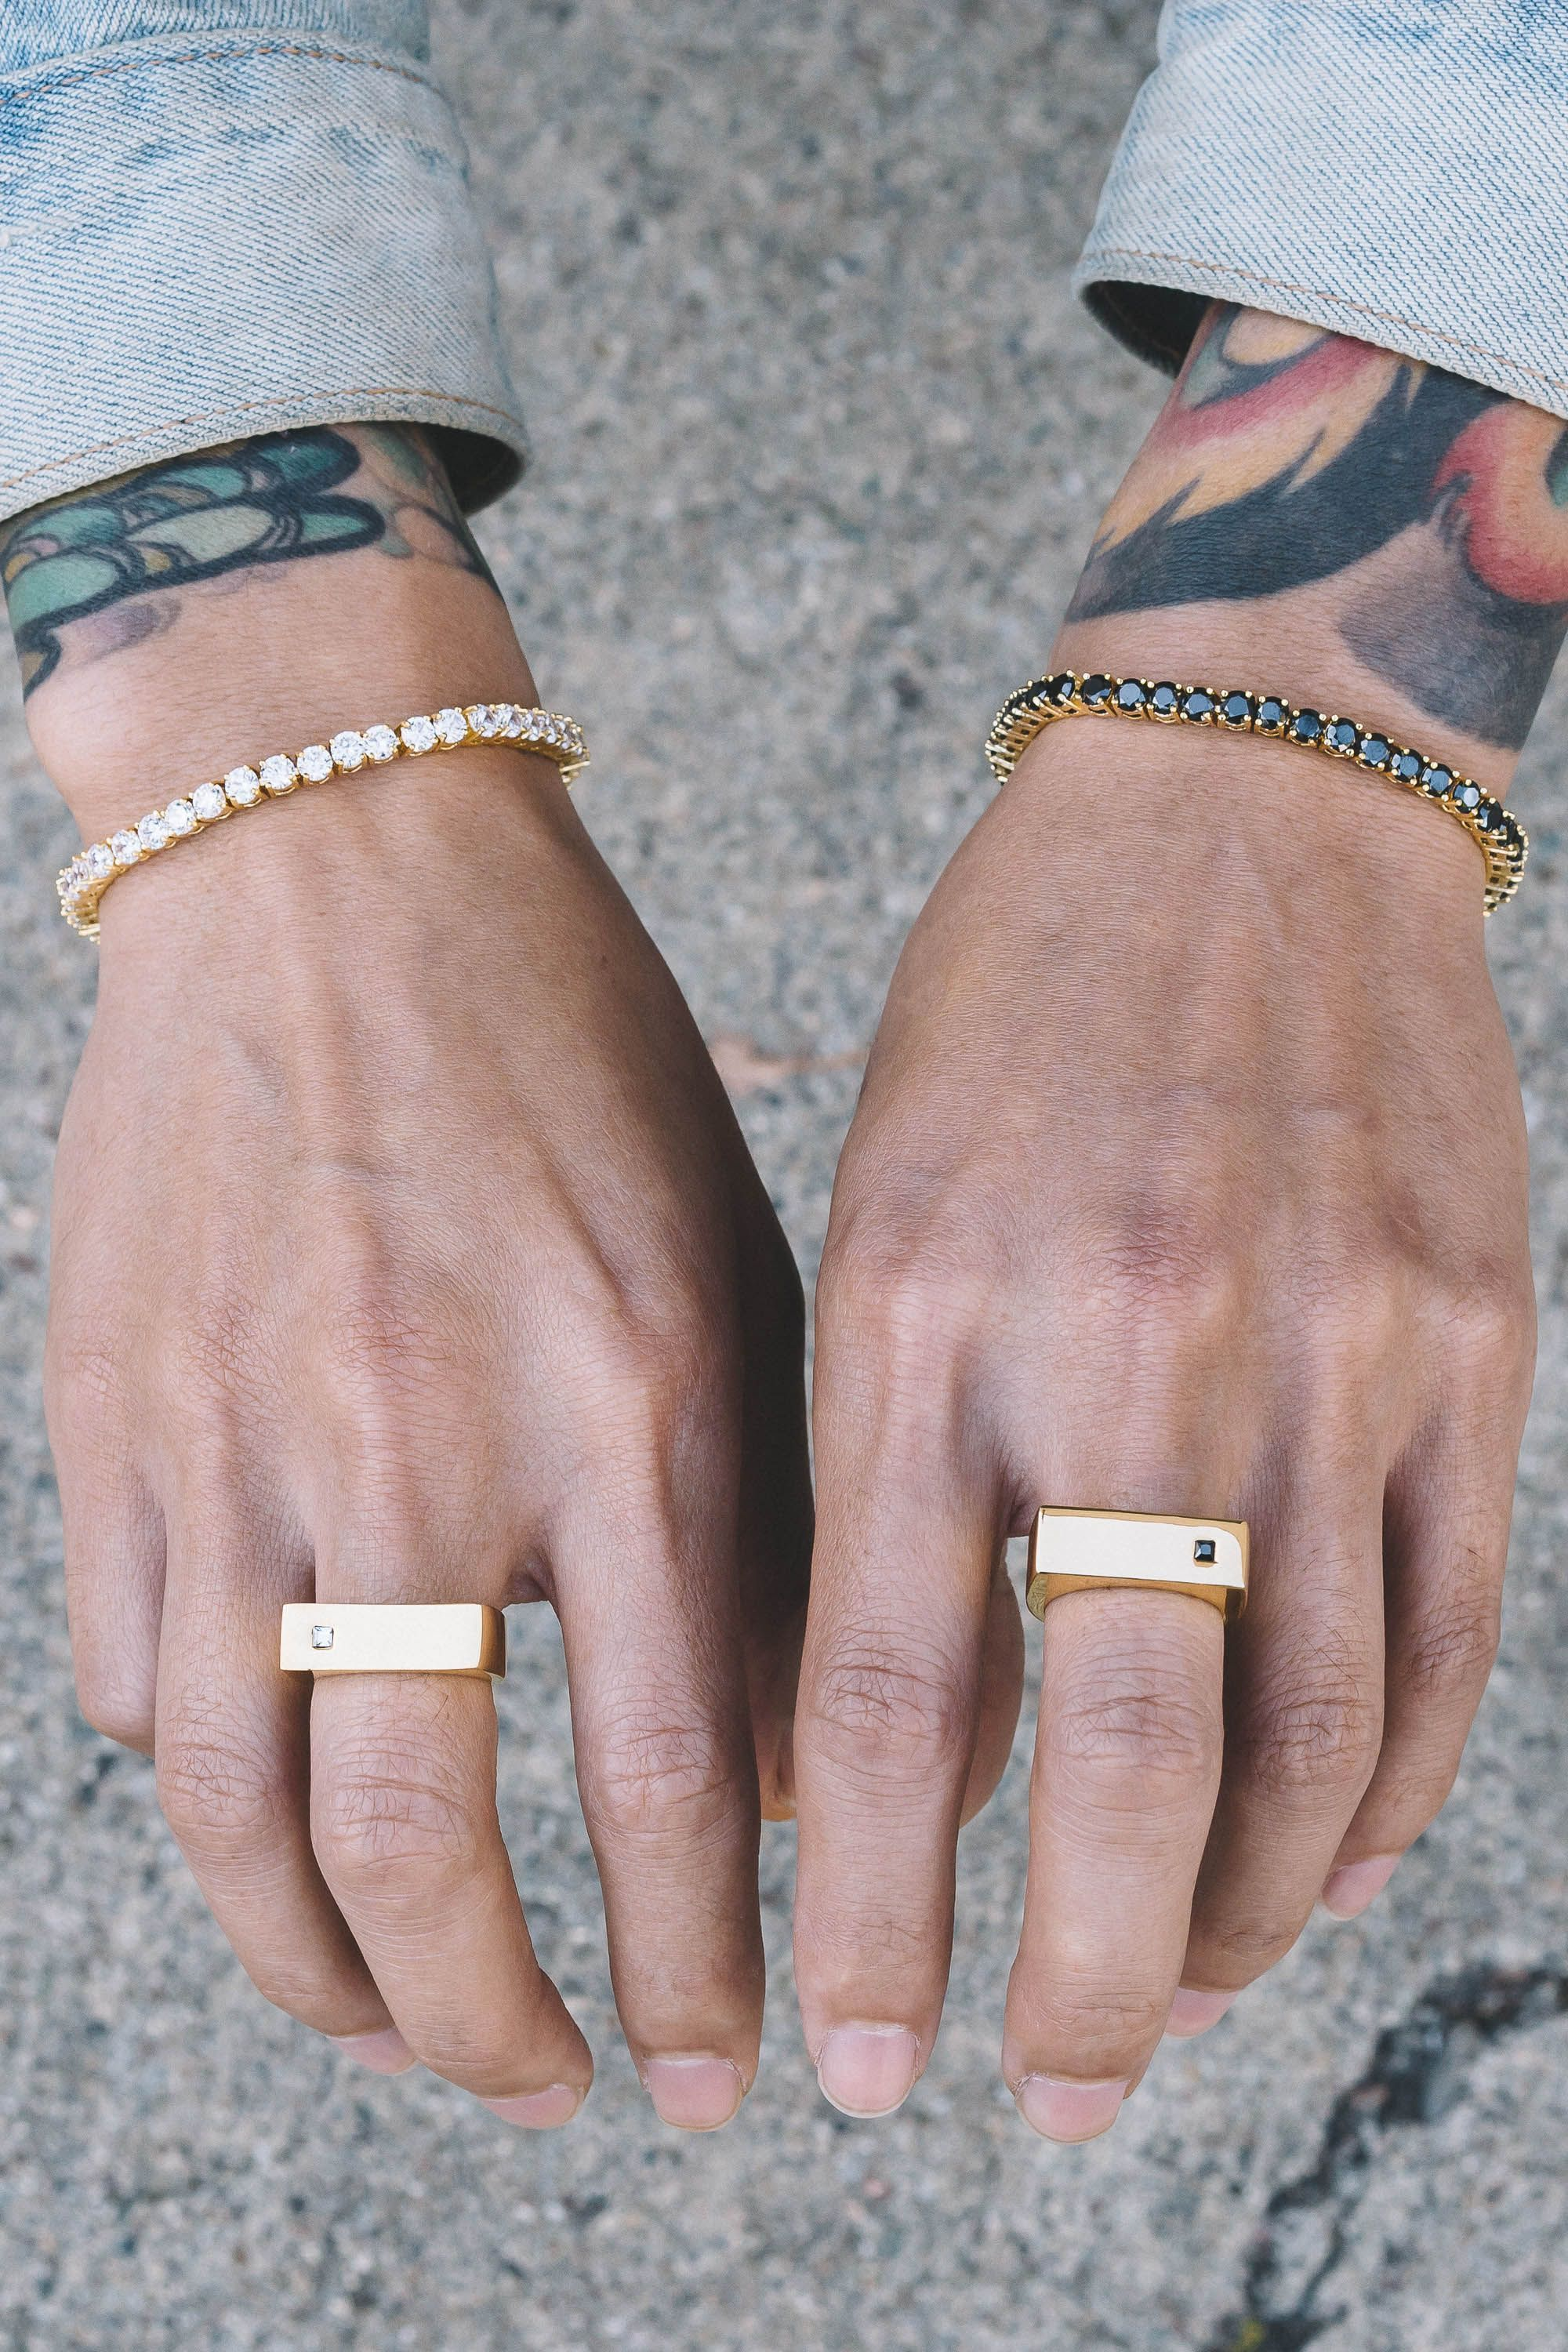 The Quality And Construction Of These Rings Are Unreal Rn Men Sjewelry Mens Jewelry Mens Accessories Men S Necklace